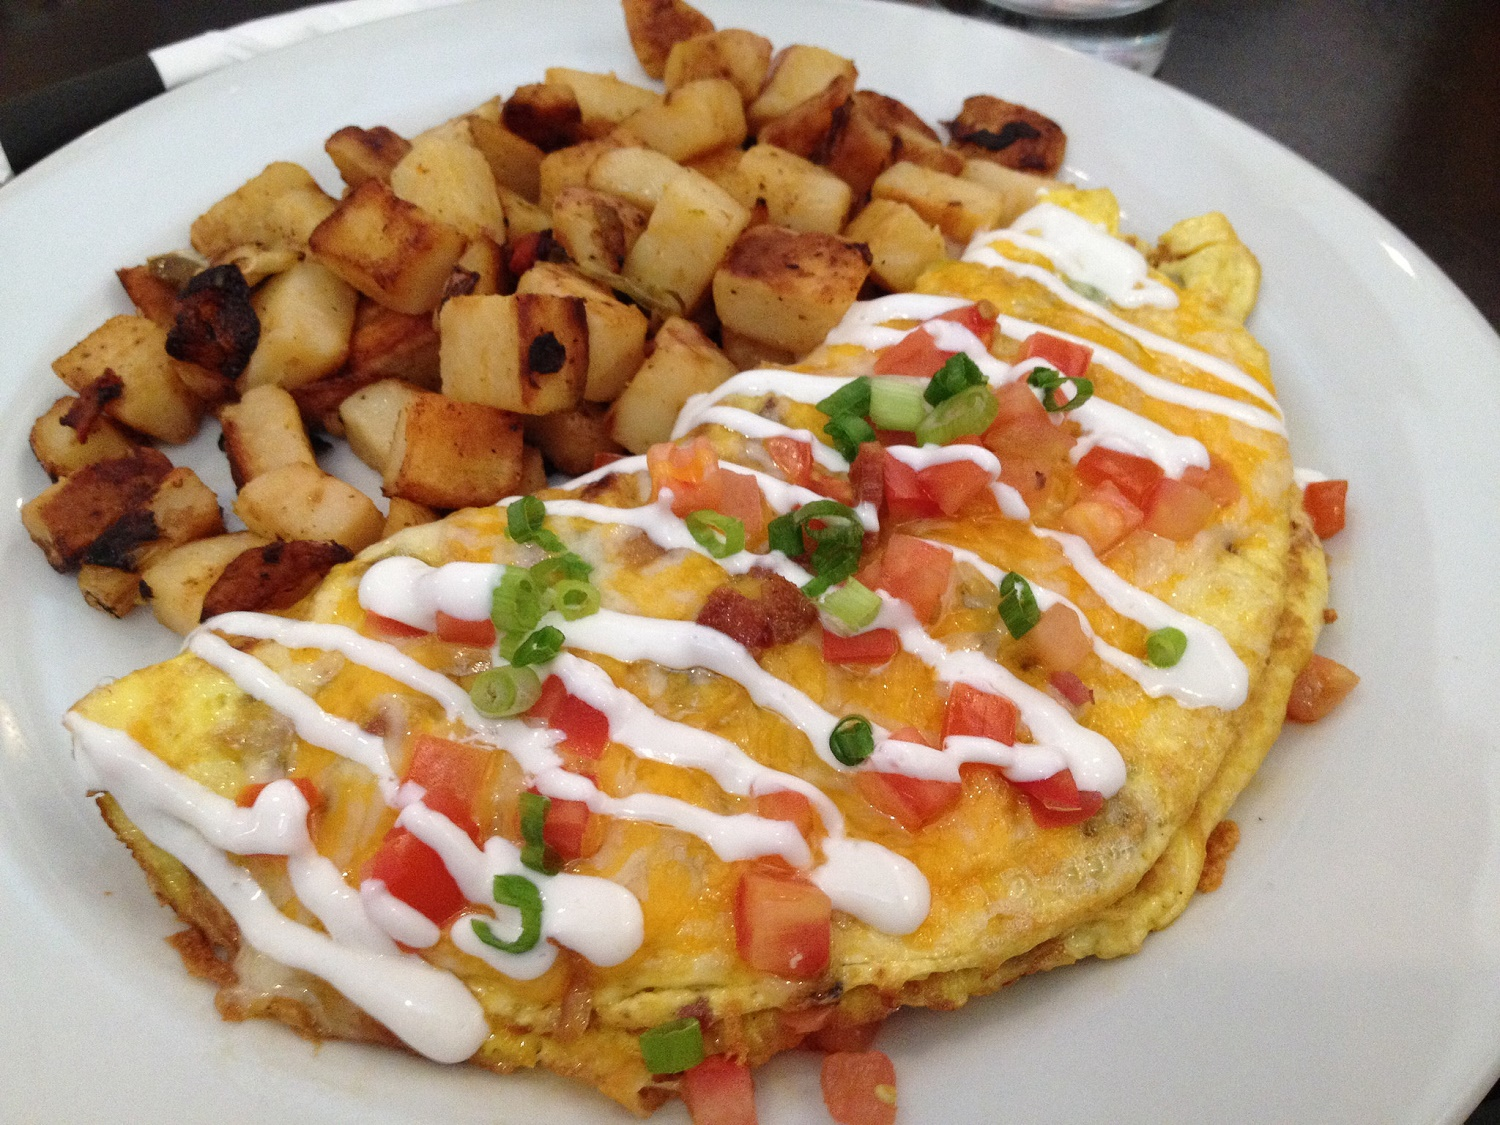 Omelette and Home Fries | © Ray Bouknight / Flickr